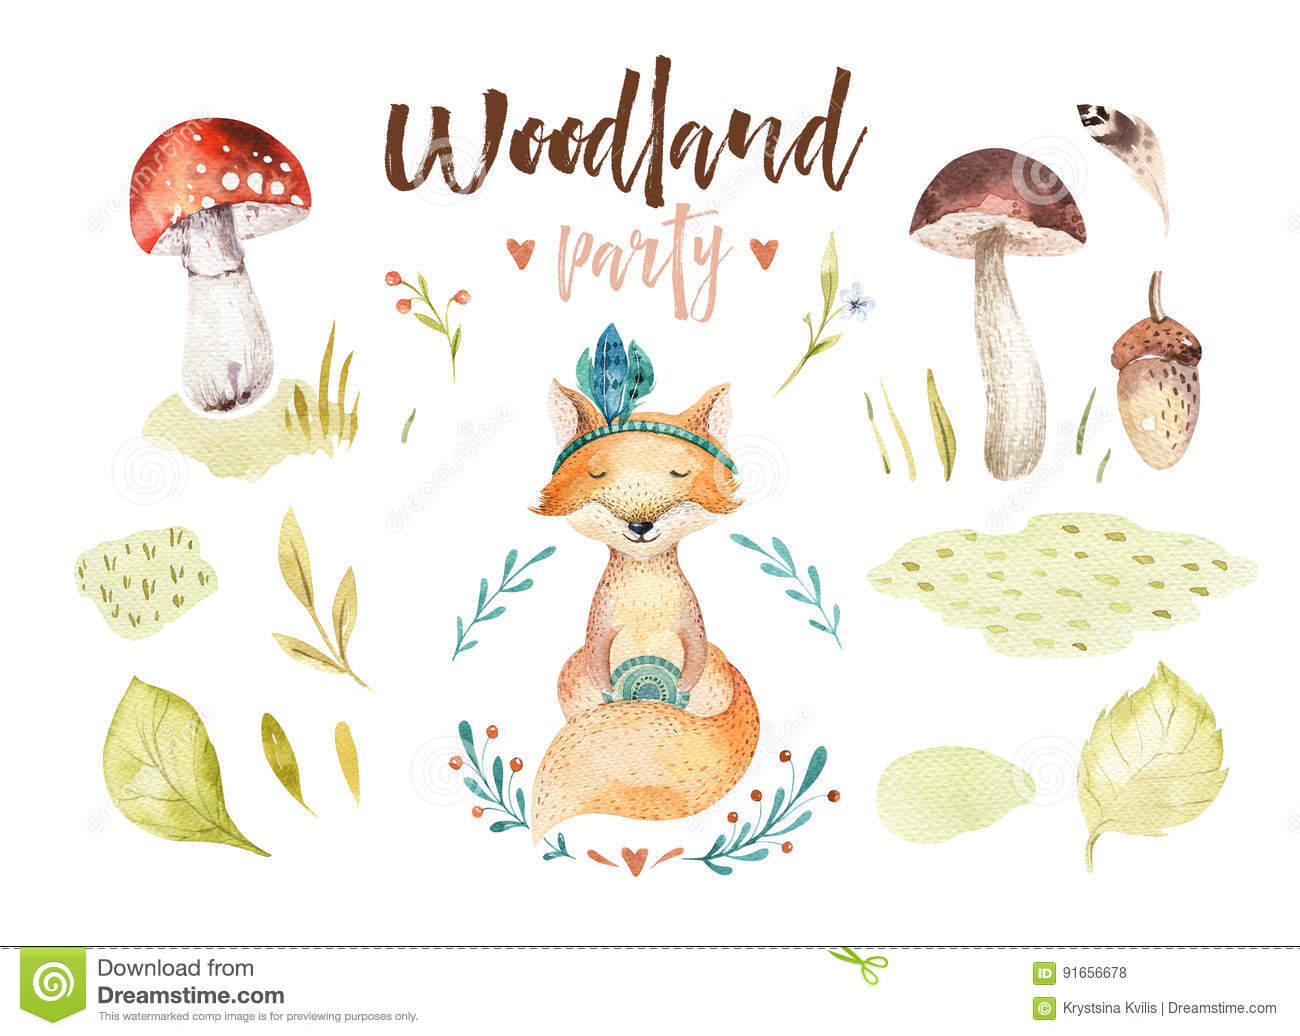 Cute baby fox animal nursery isolated illustration for children. Watercolor boho forest drawing, watercolour woodland